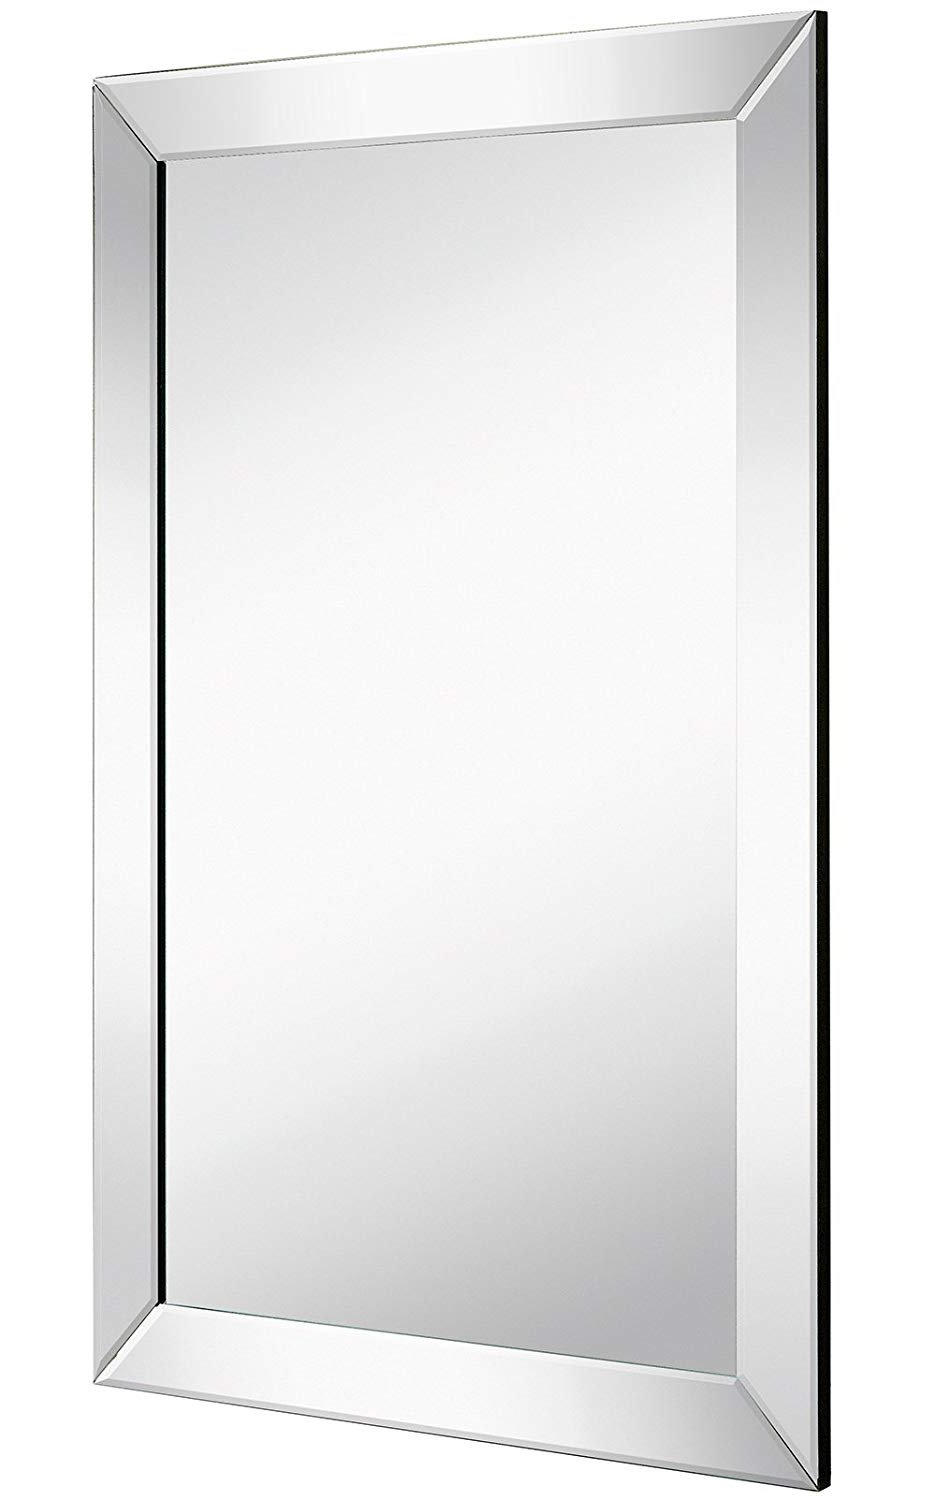 Famous Large Flat Framed Wall Mirror With 2 Inch Edge Beveled Mirror Frame With Regard To Flat Wall Mirrors (View 15 of 20)